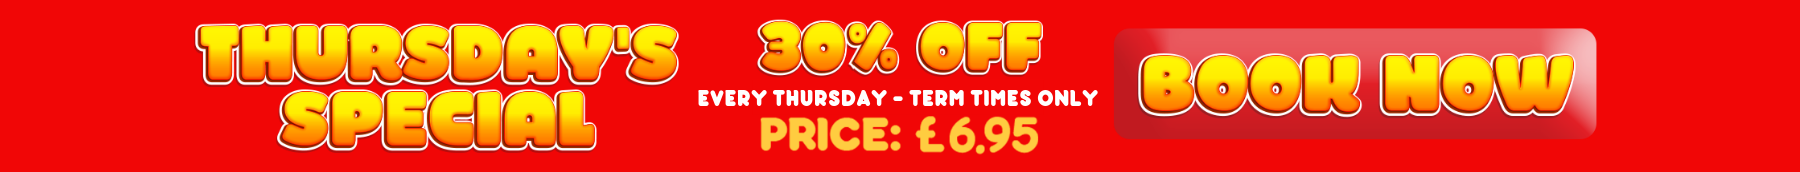 Every thursday - term times only